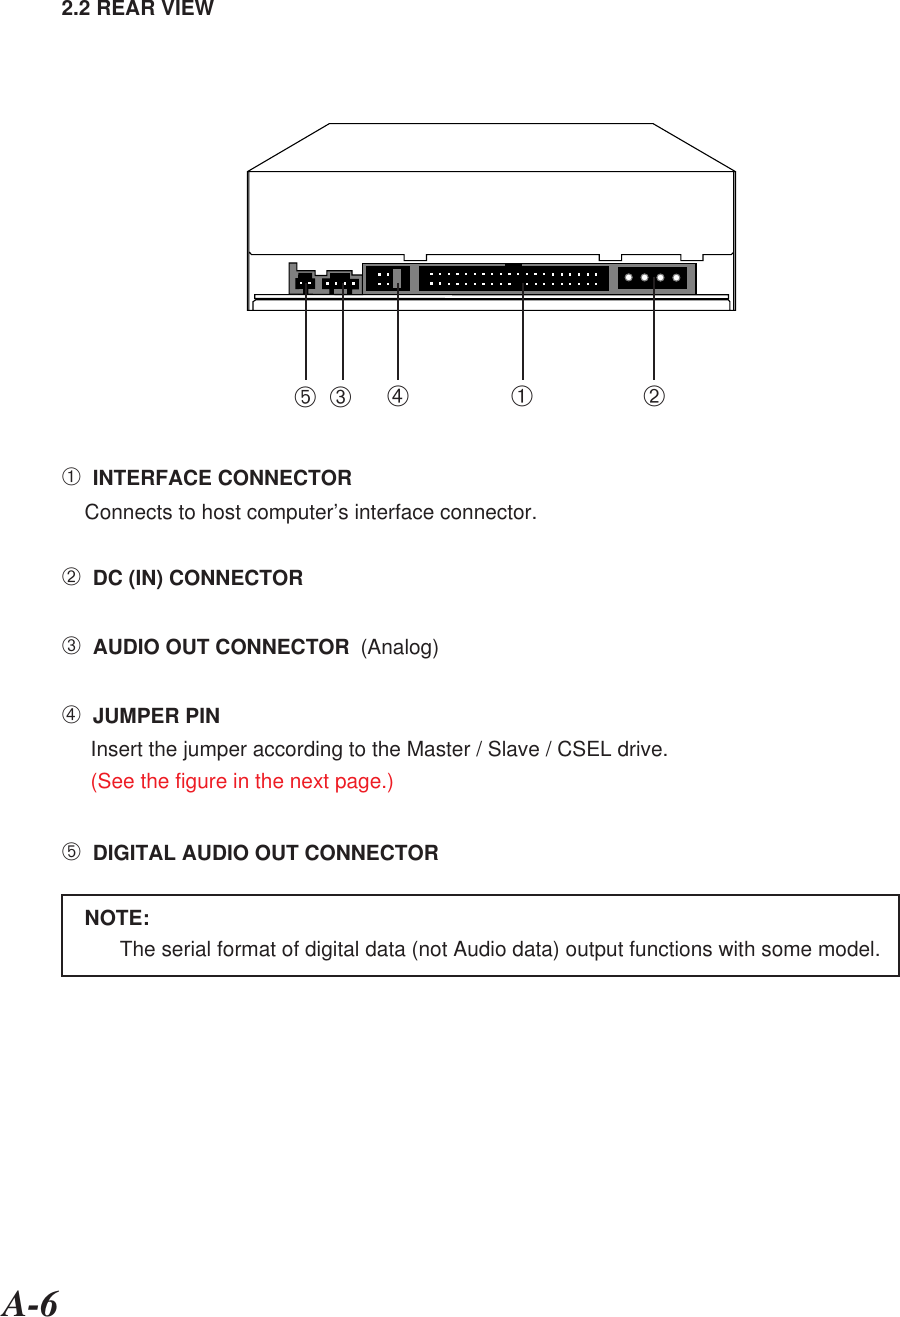 A-62.2 REAR VIEW➀  INTERFACE CONNECTOR    Connects to host computer's interface connector.➁  DC (IN) CONNECTOR➂  AUDIO OUT CONNECTOR  (Analog)➃  JUMPER PINInsert the jumper according to the Master / Slave / CSEL drive.(See the figure in the next page.)➄  DIGITAL AUDIO OUT CONNECTOR    NOTE:The serial format of digital data (not Audio data) output functions with some model.➀➁➂➃➄